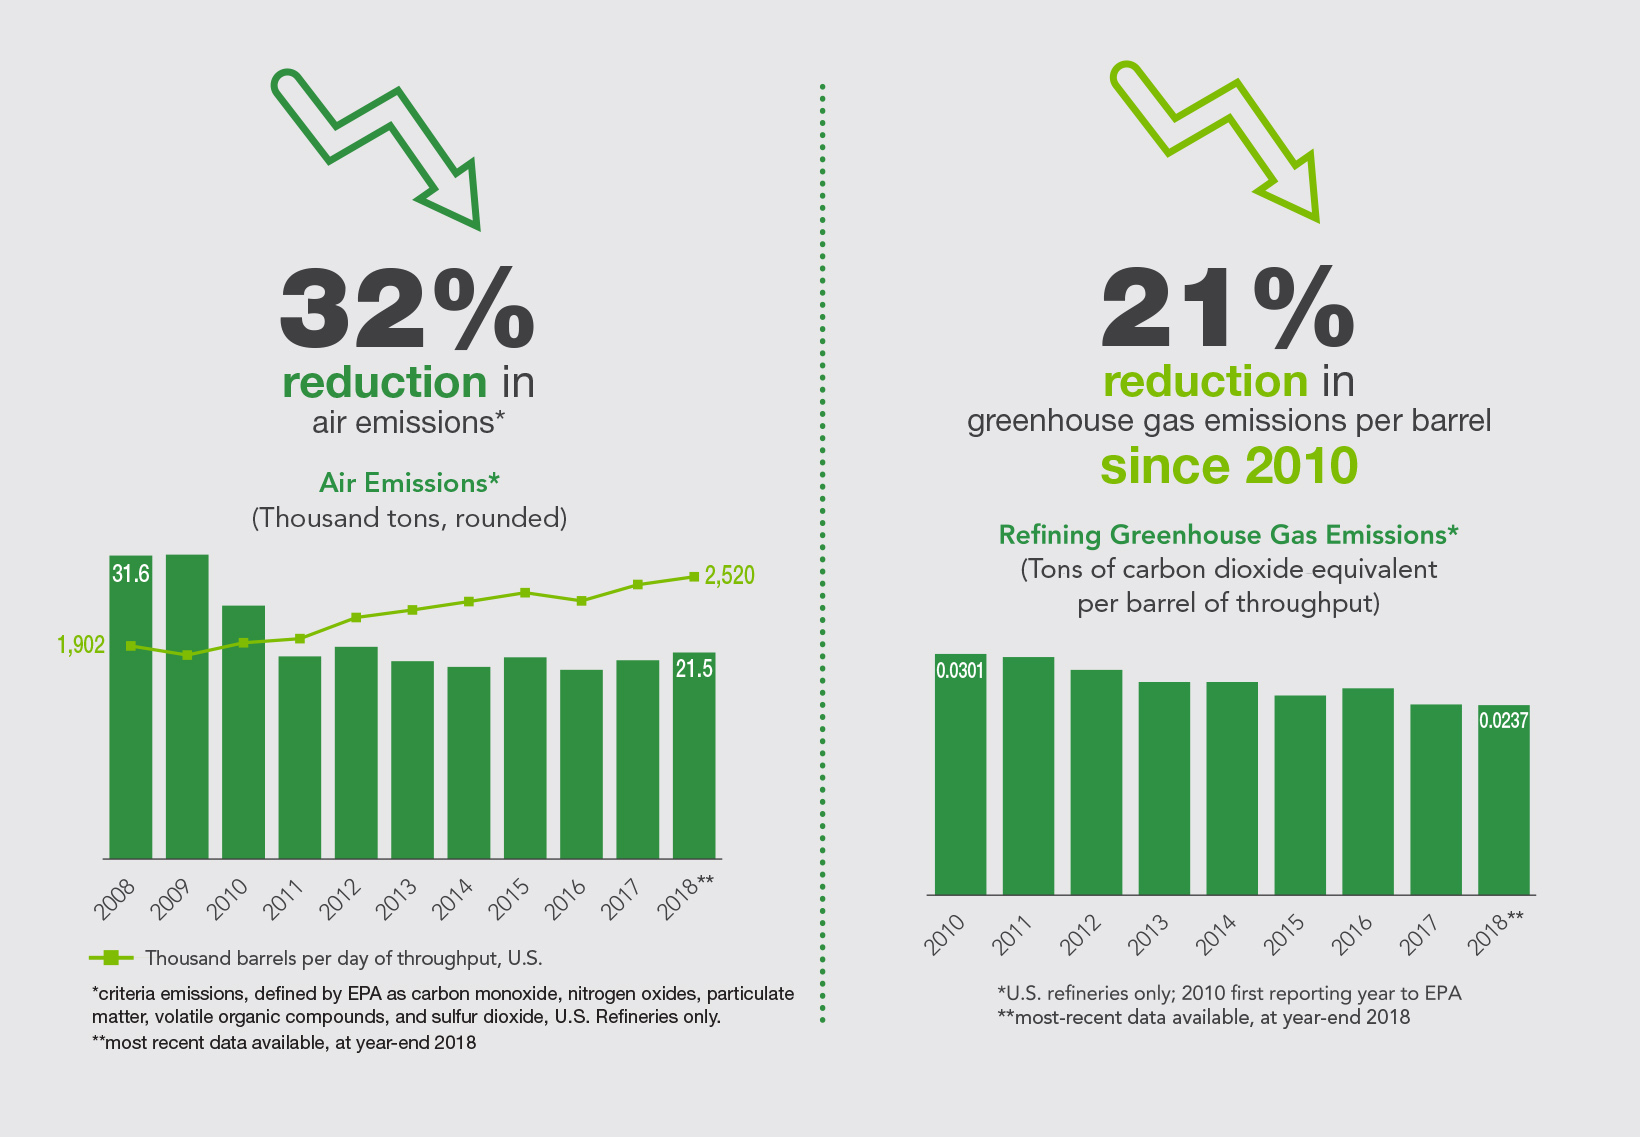 Valero Emissions Reduction Infographic